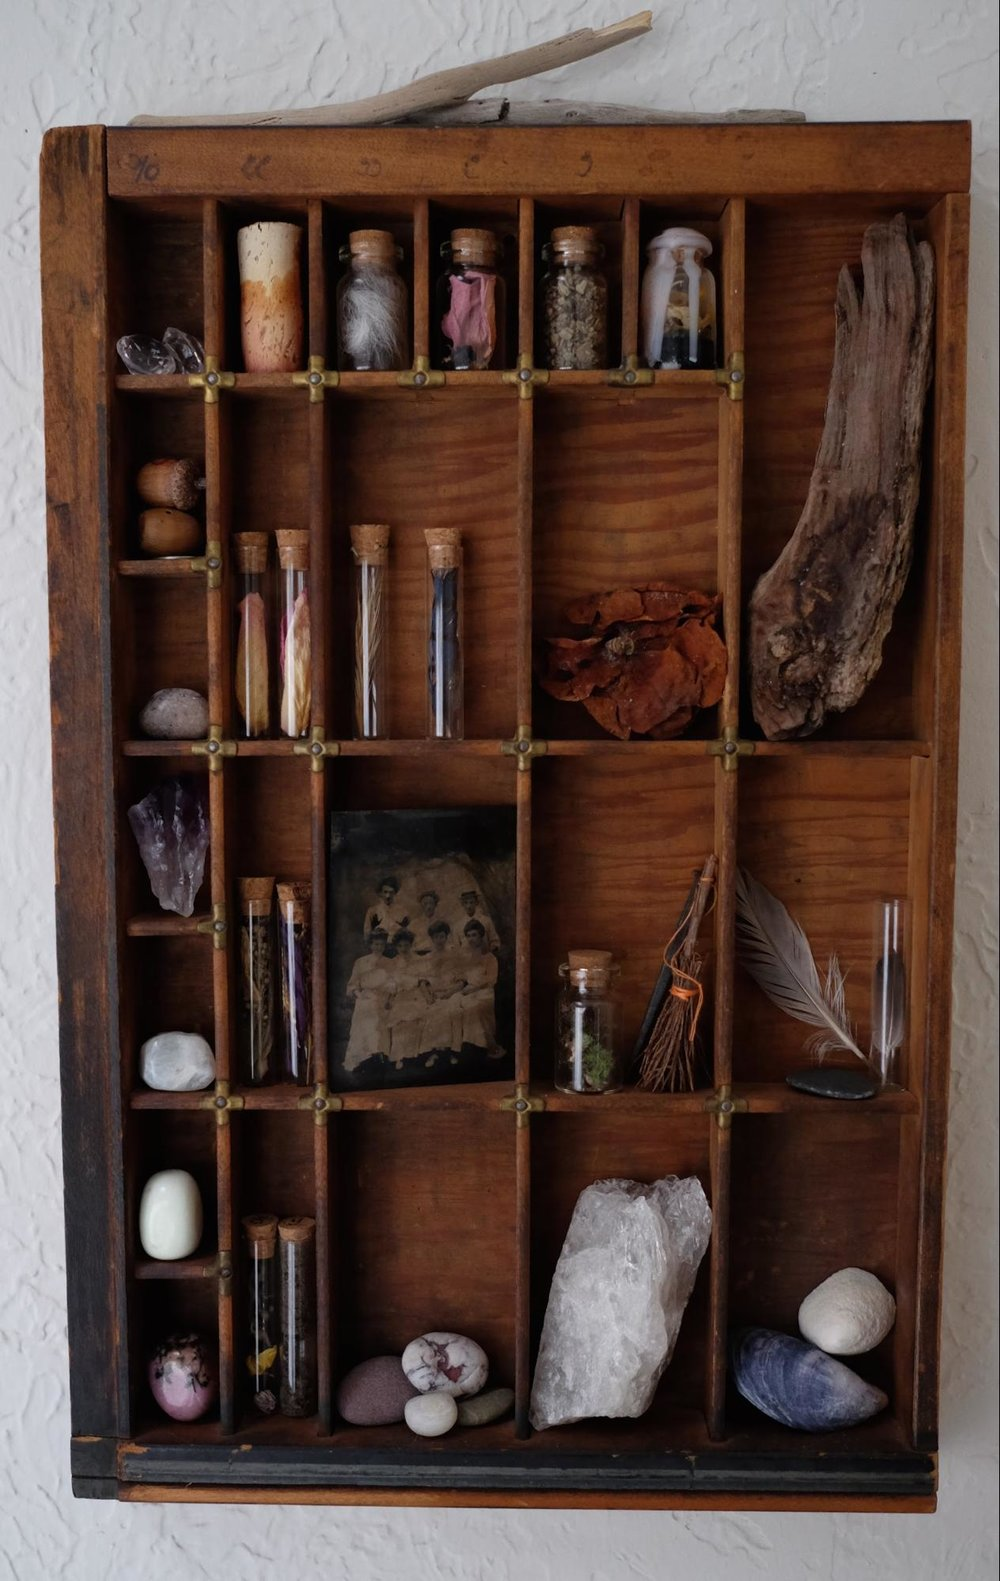 Printer's tray. Displays botanical curios collected from my travels.